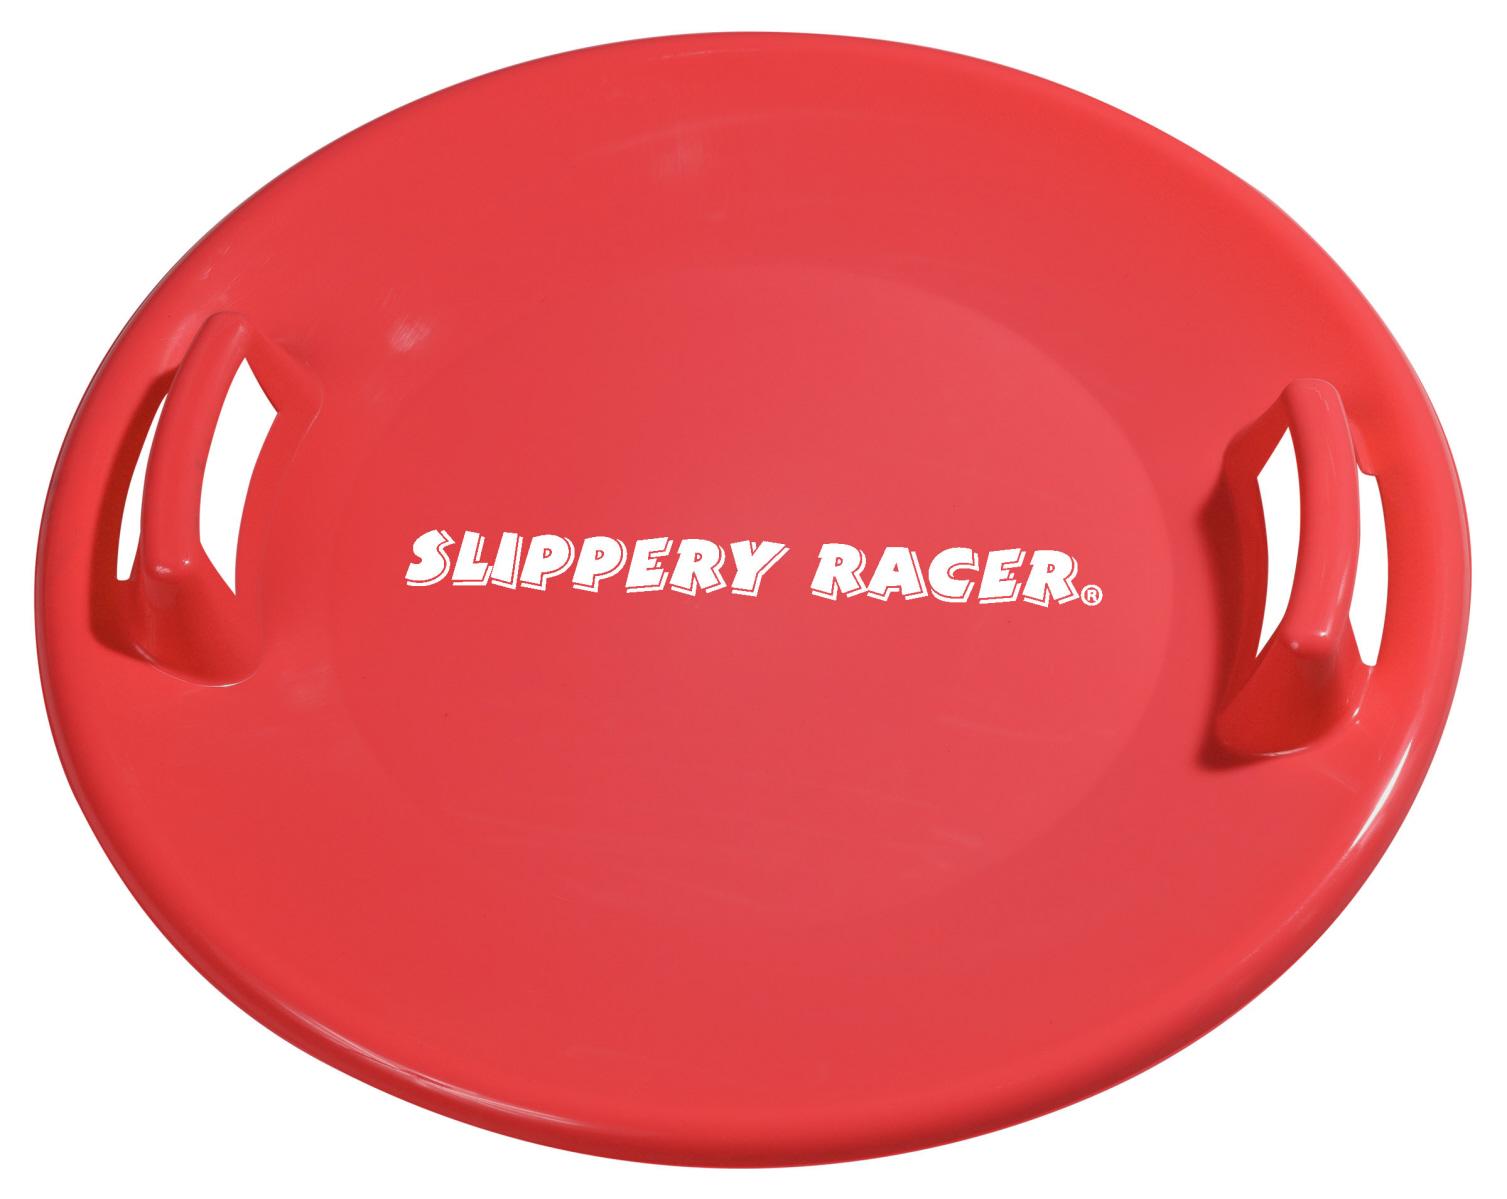 Slippery Racer Downhill Pro Disc Saucer Sled by Slippery Racer